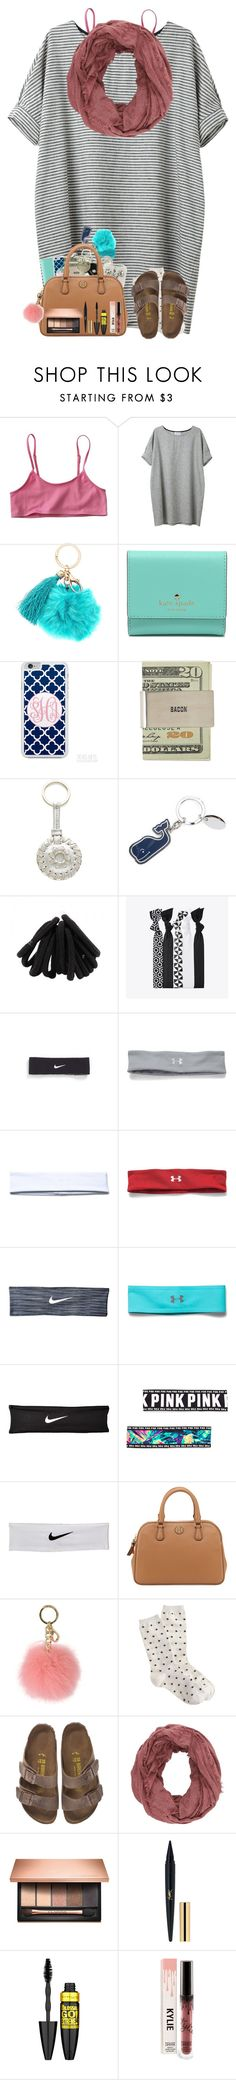 """""""January newsletter!! ❄️   RTD Please!"""" by one-of-those-nights ❤ liked on Polyvore featuring Kate Spade, Popband, NIKE, Under Armour, Tory Burch, MICHAEL Michael Kors, Birkenstock, Charlotte Russe, Clarins and Maybelline"""